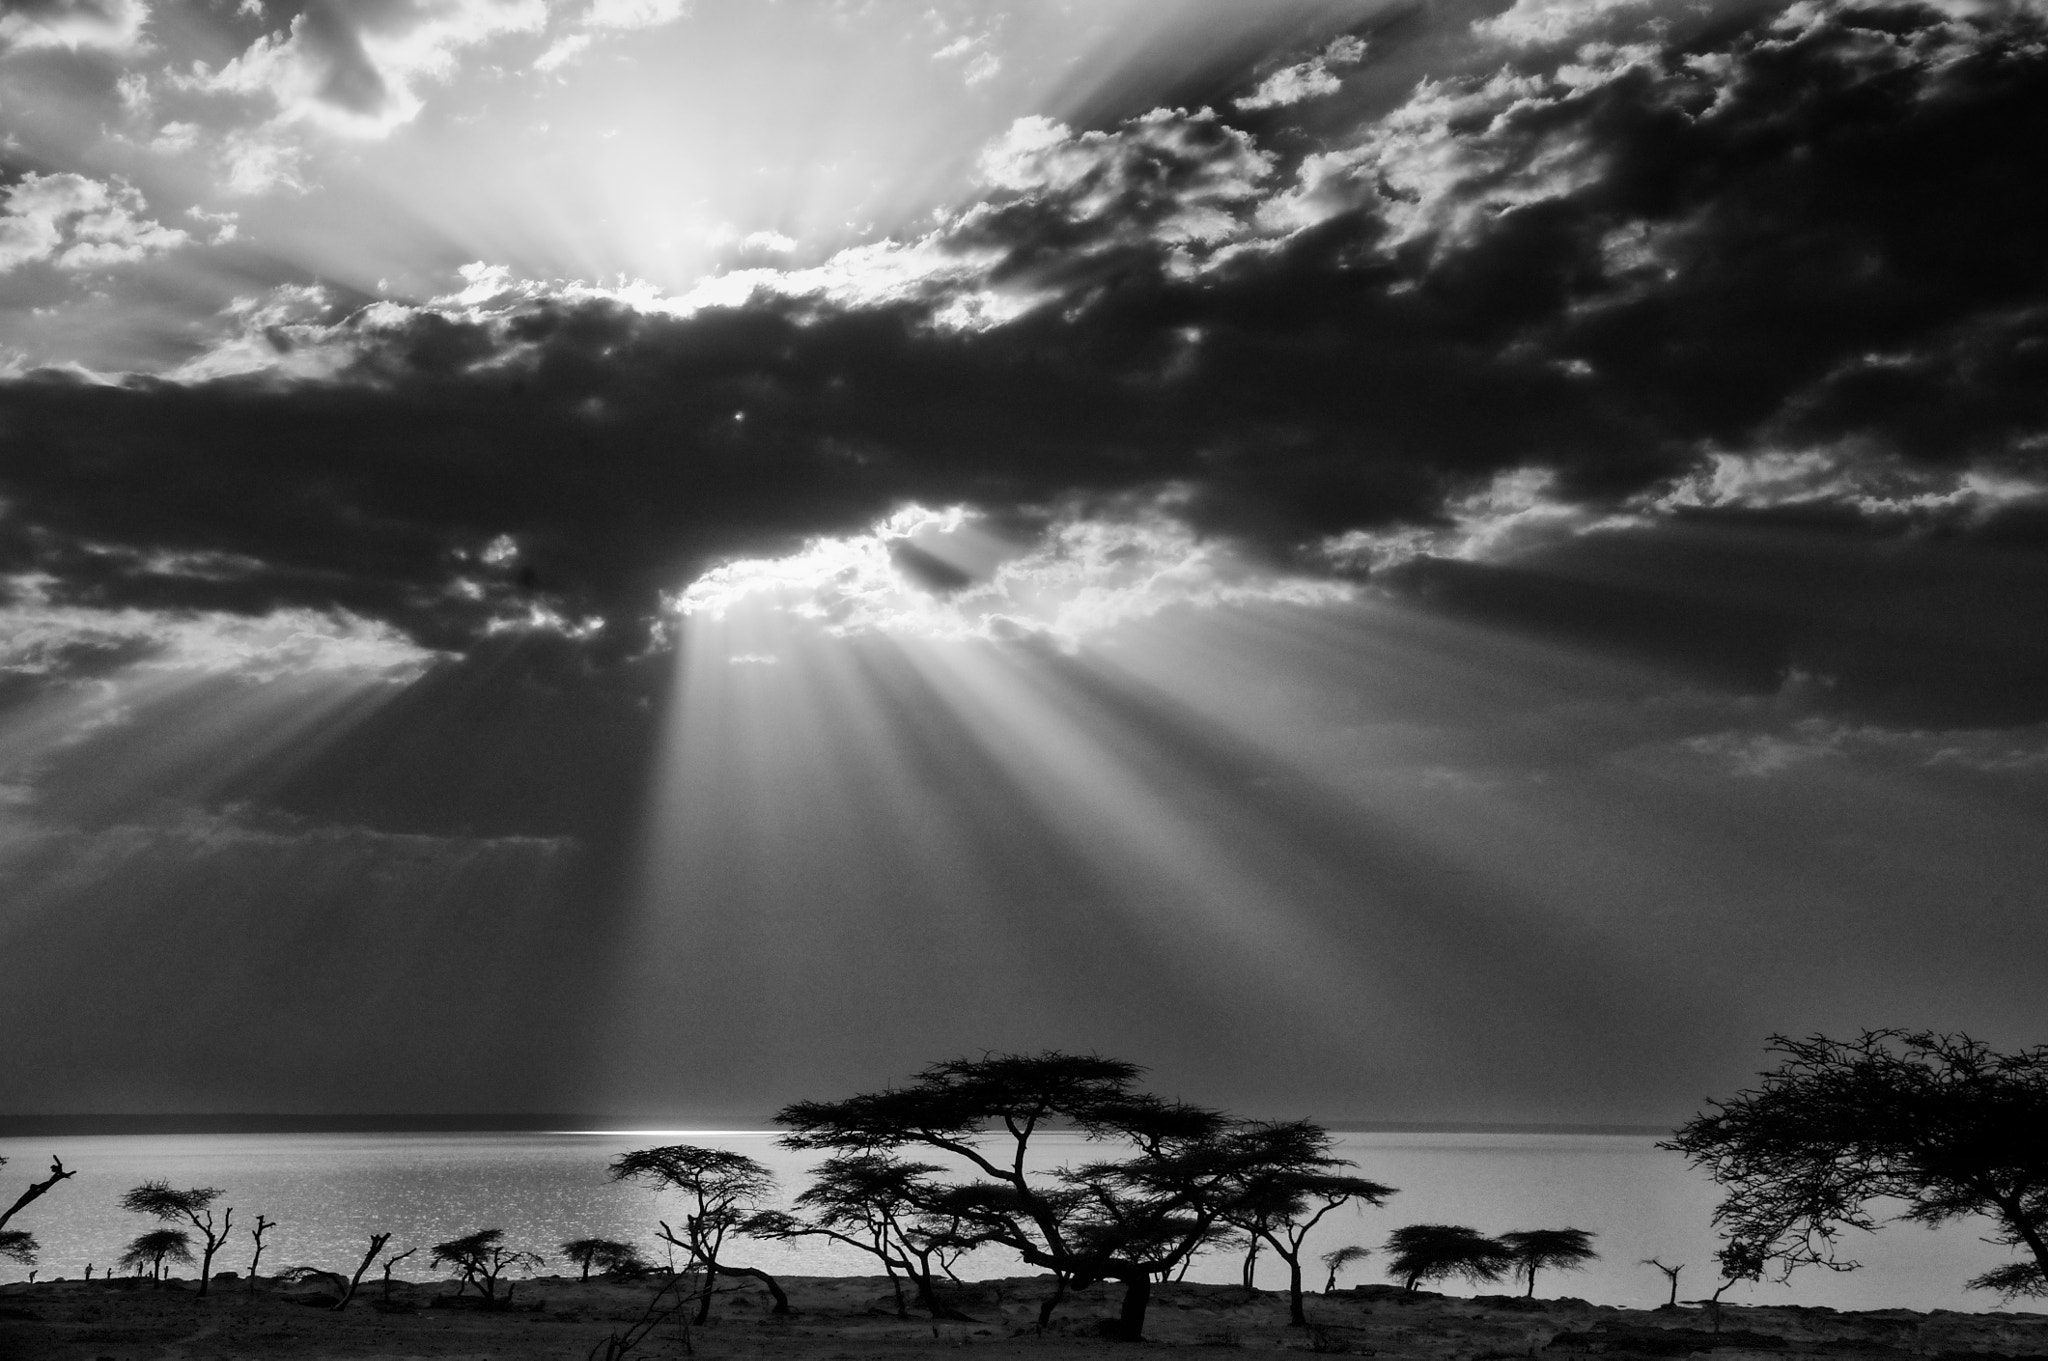 Photograph Acacias in silhouette by Trevor Cole on 500px